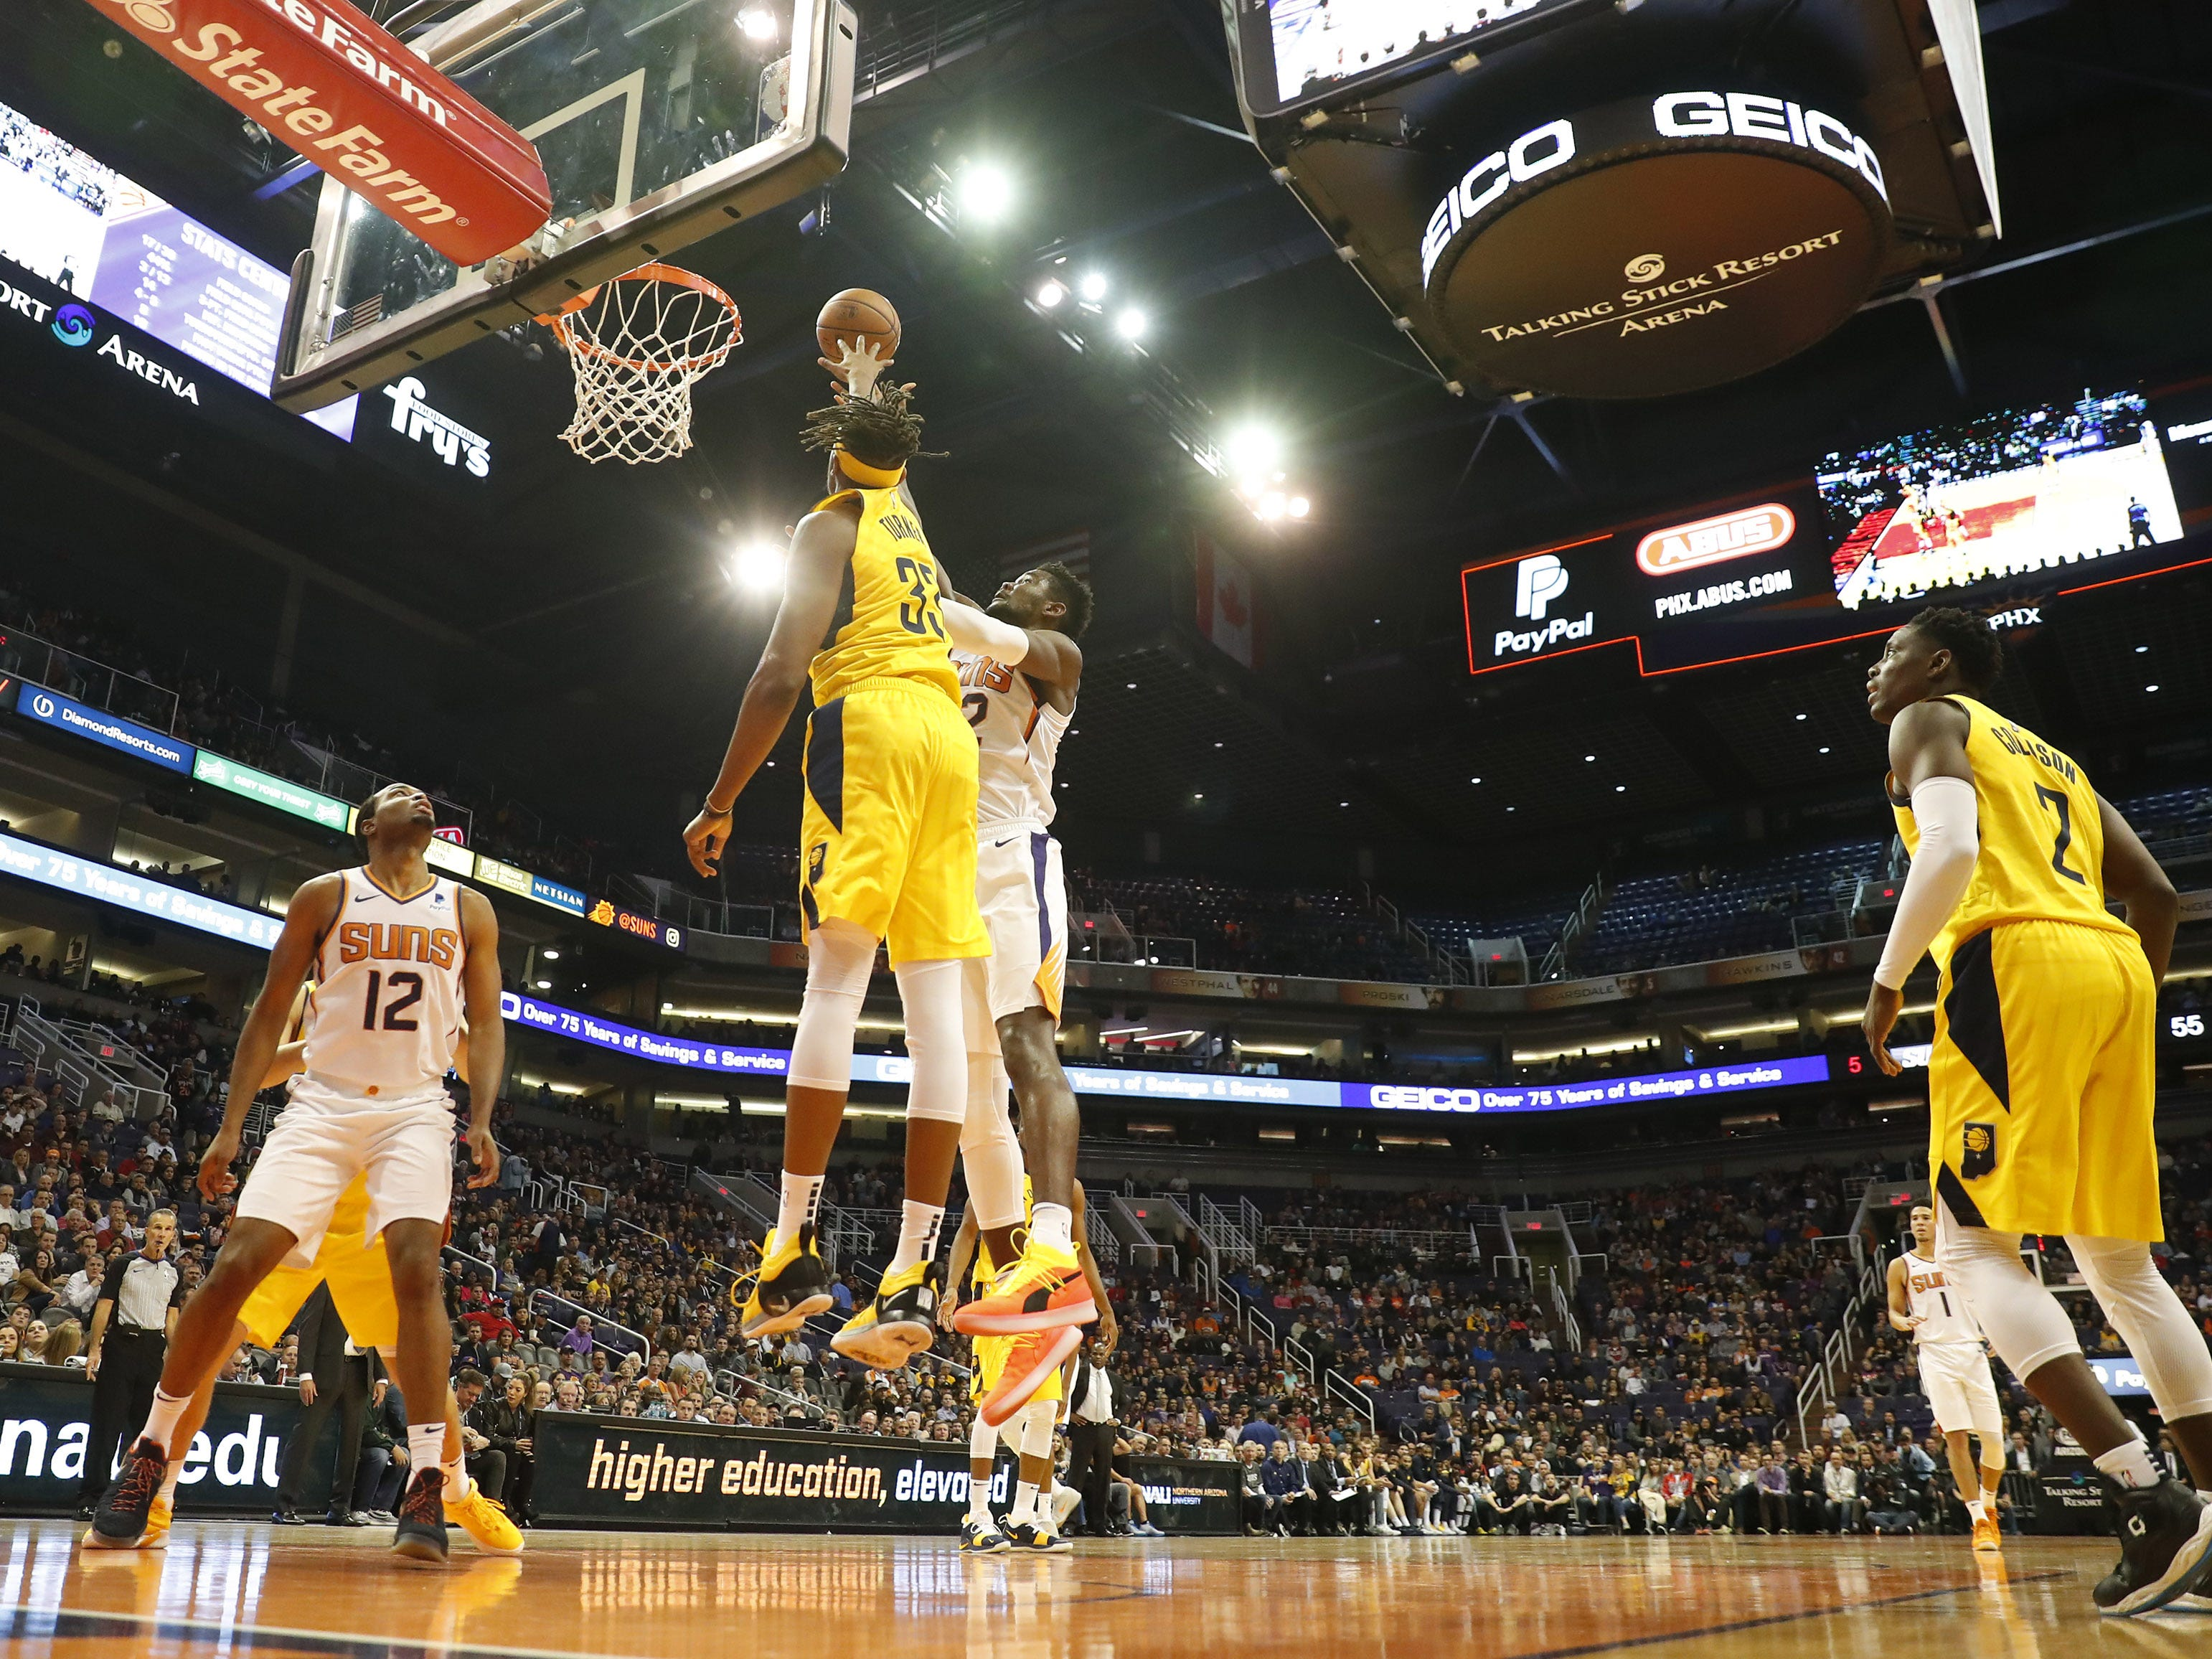 Phoenix Suns center Deandre Ayton (22) shoots over Indiana Pacers center Myles Turner (33) during the second quarter November 27.